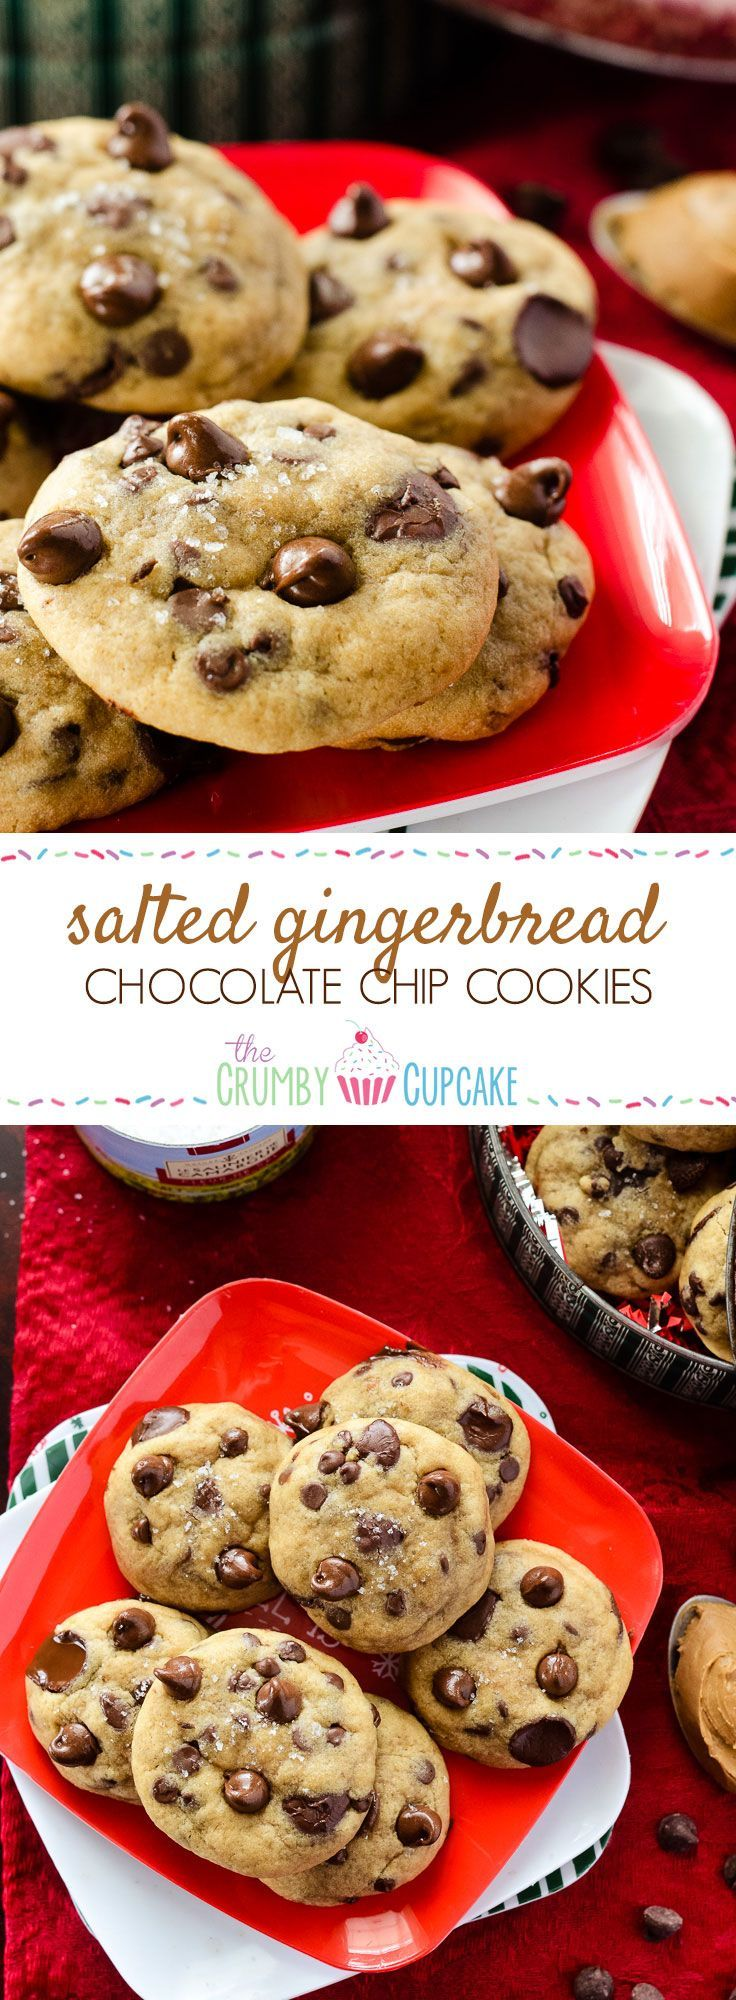 Salted Gingerbread Chocolate Chip Cookies | Tons of chocolate chips and a touch of sea salt, nestled in the easiest gingerbread-flavored cookie dough on earth - no sticky molasses or grated ginger required!